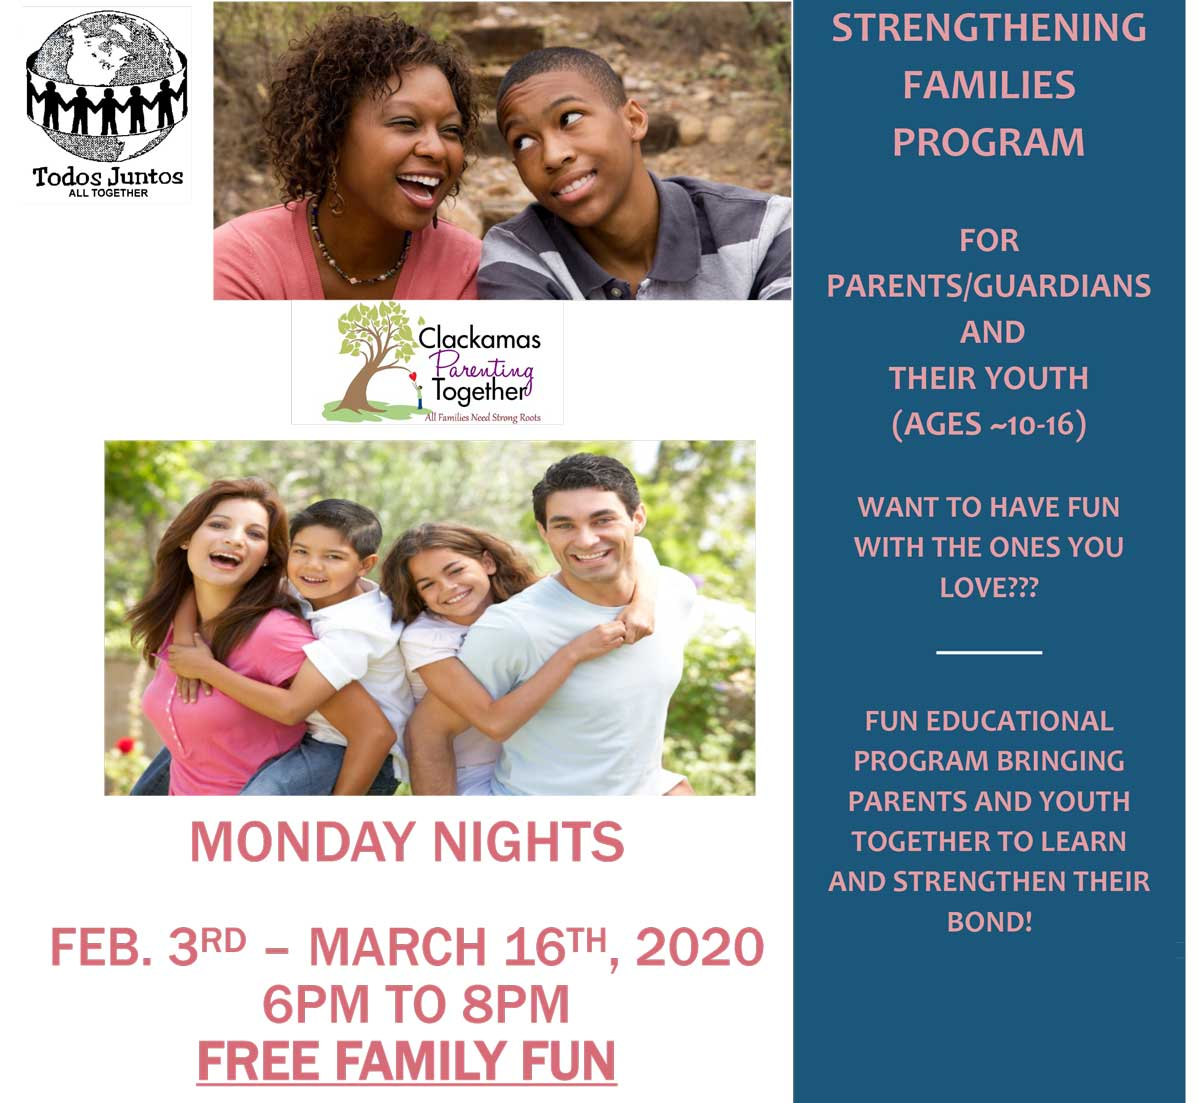 Strengthening Families Program<br>Feb. 3 - Mar. 16